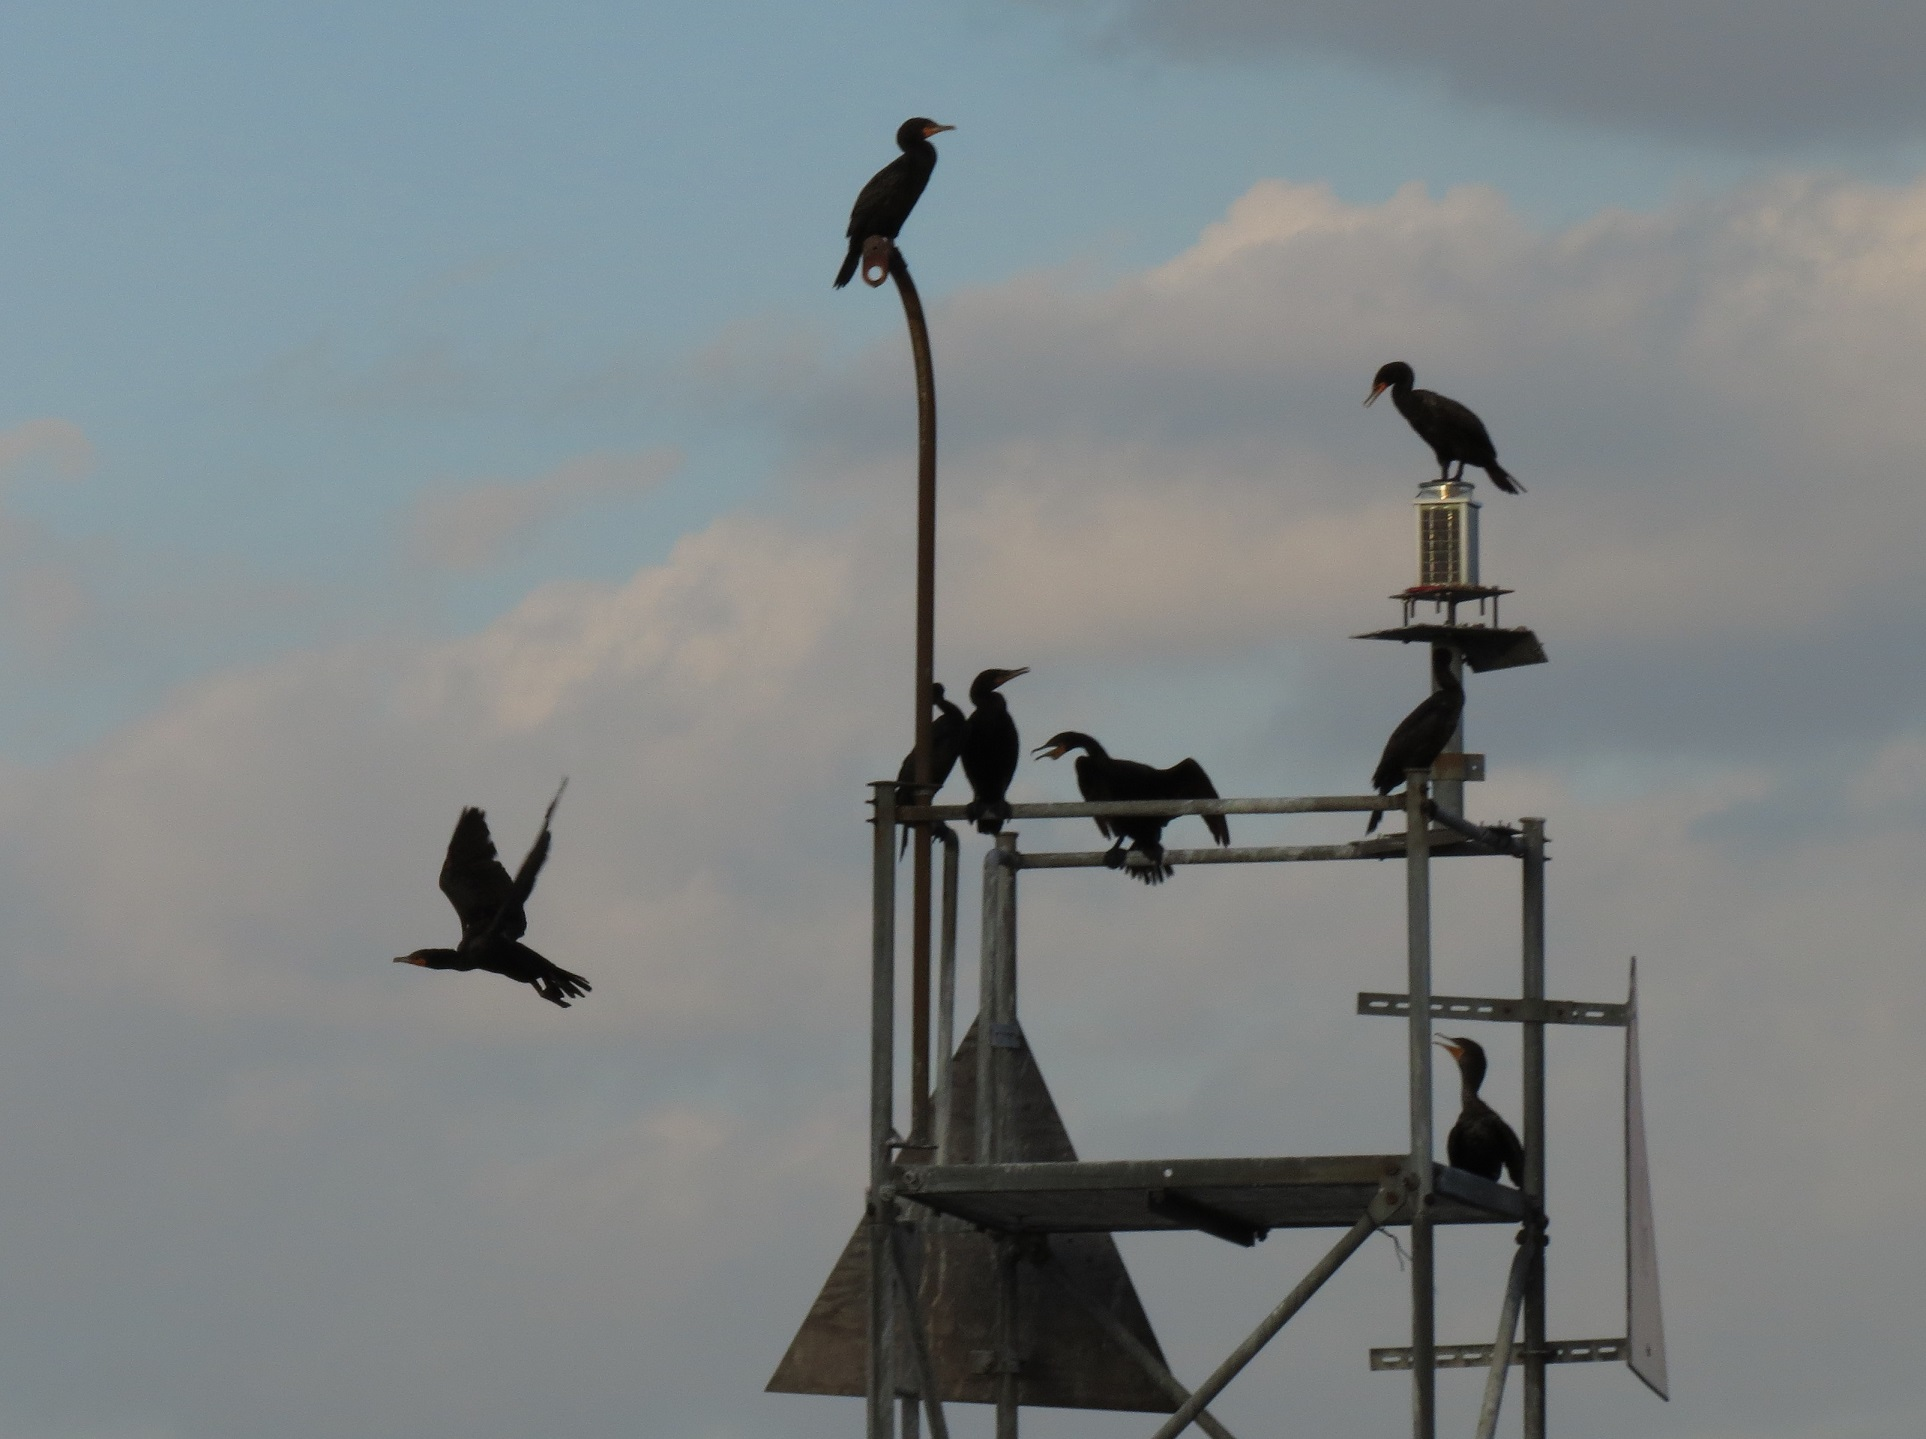 Cormorants - U Thant Island